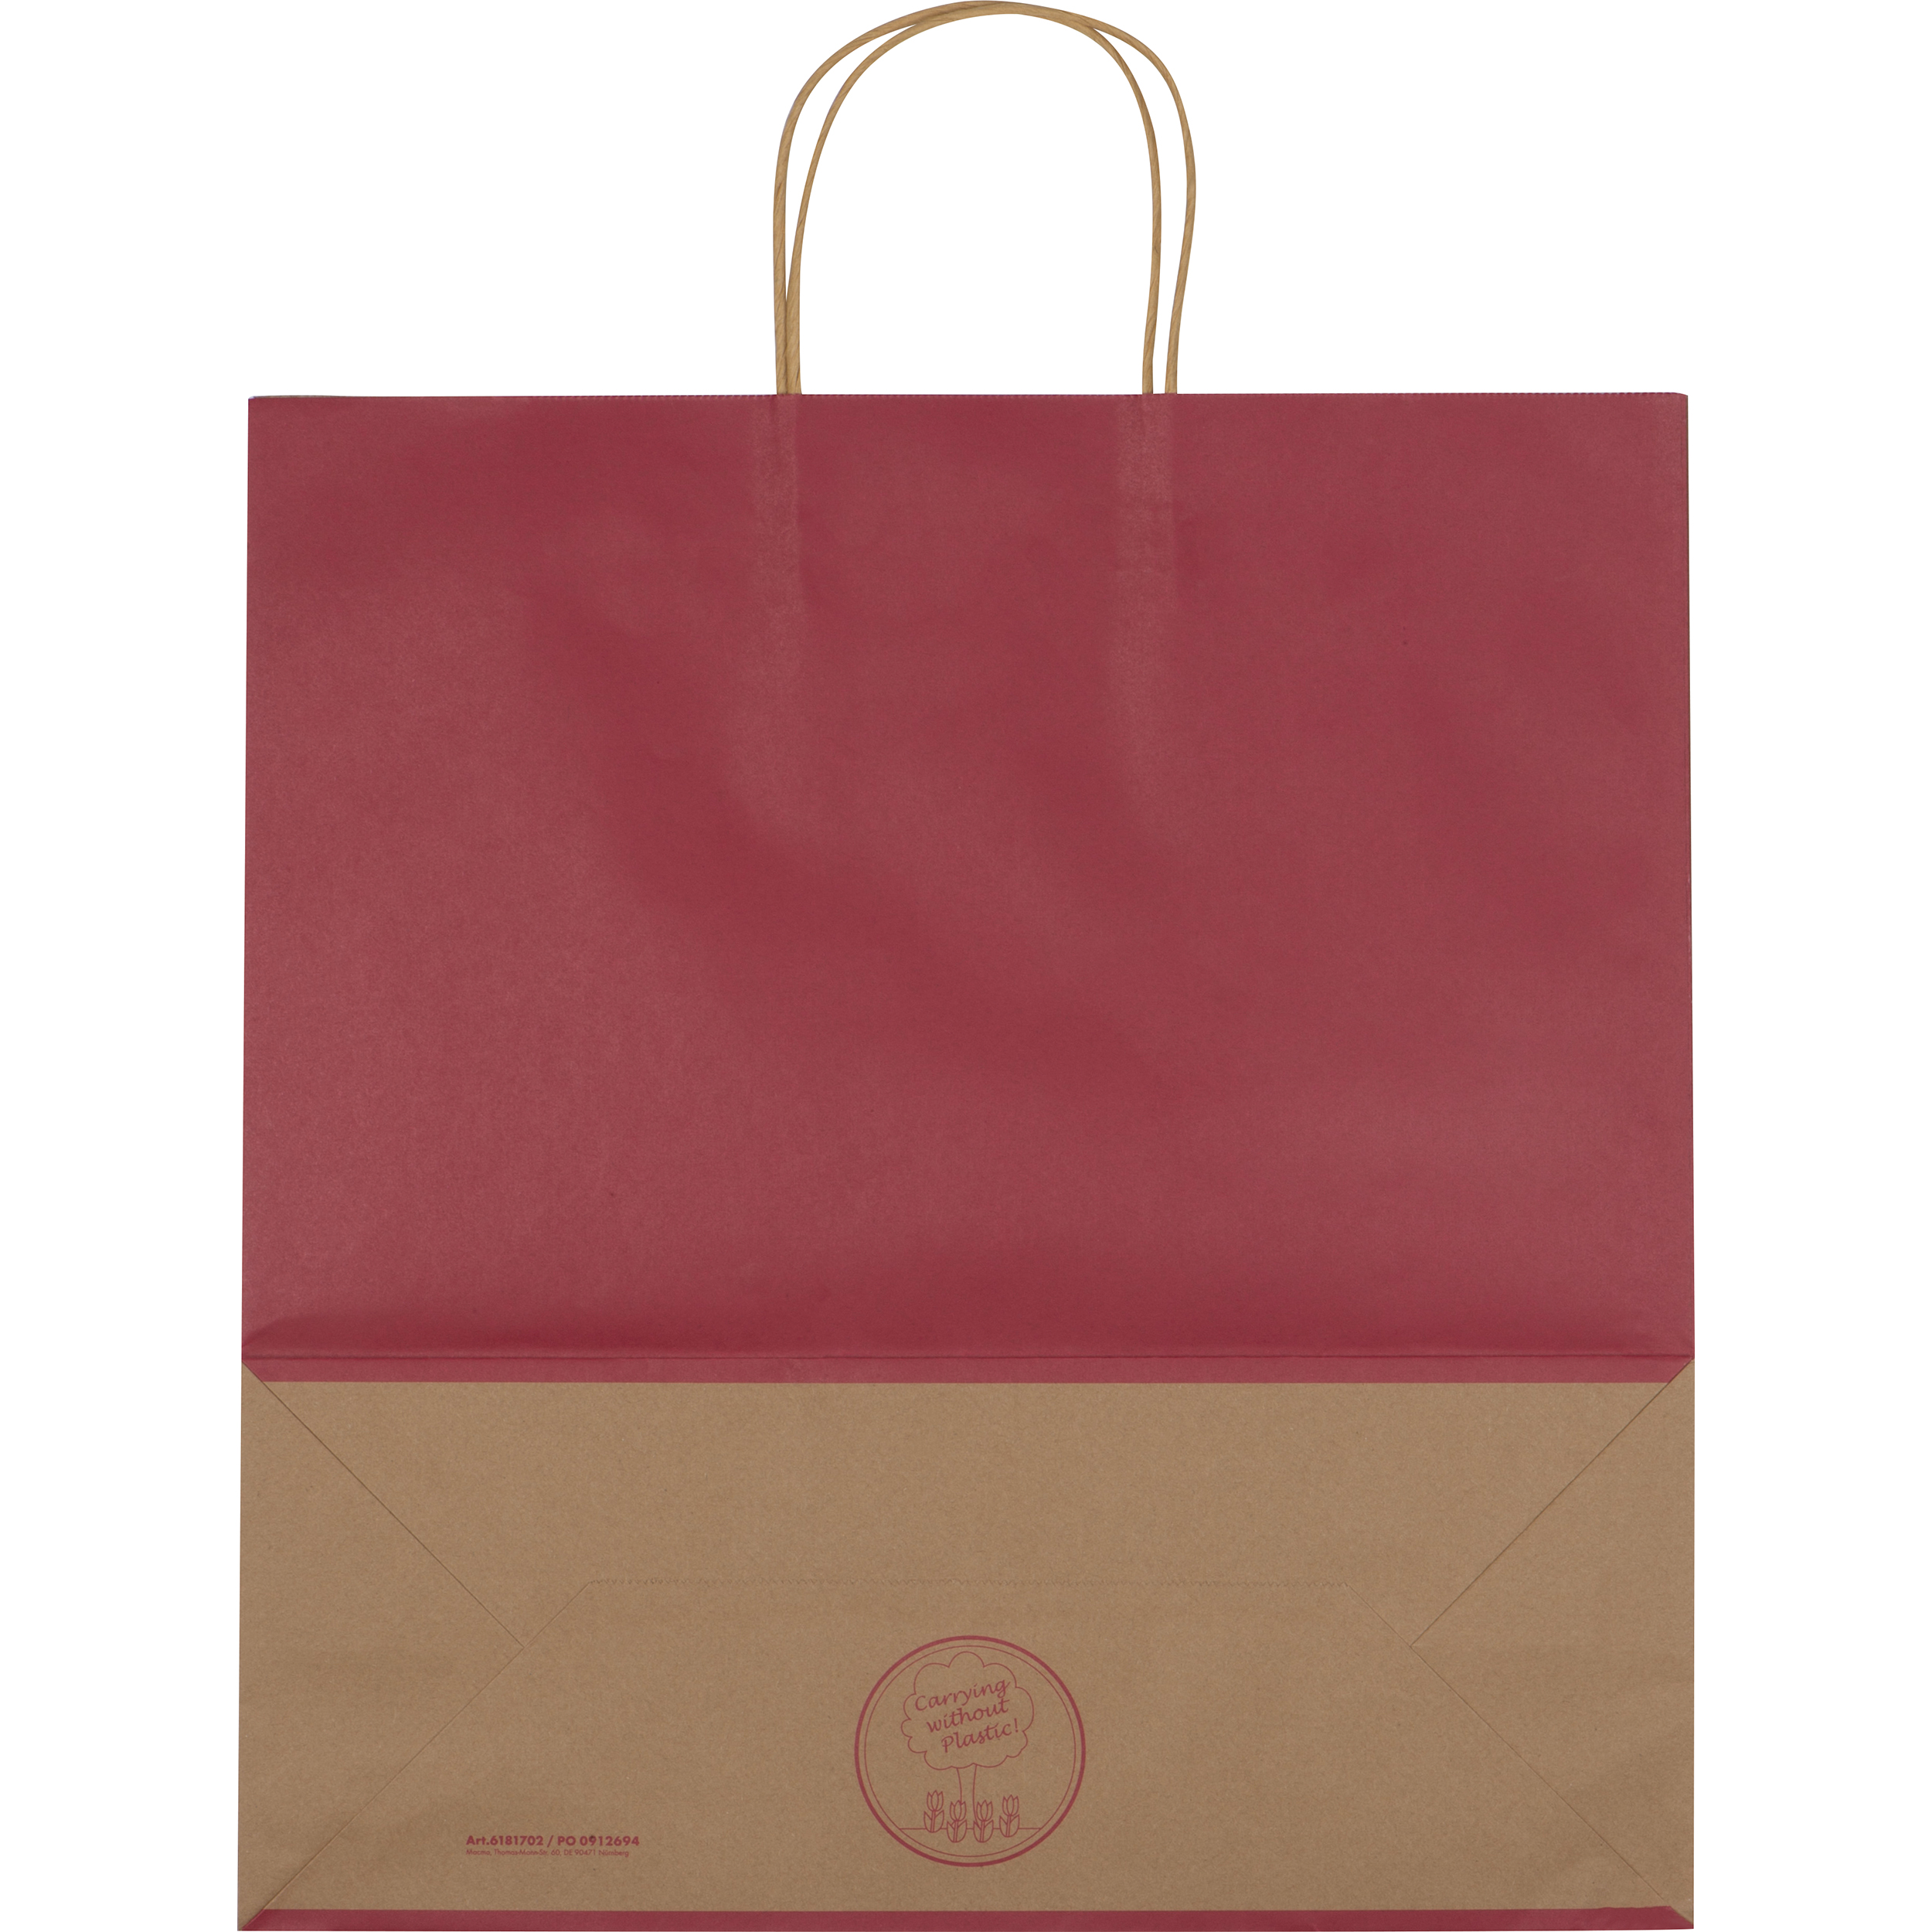 Big recycled paperbag with 2 handles